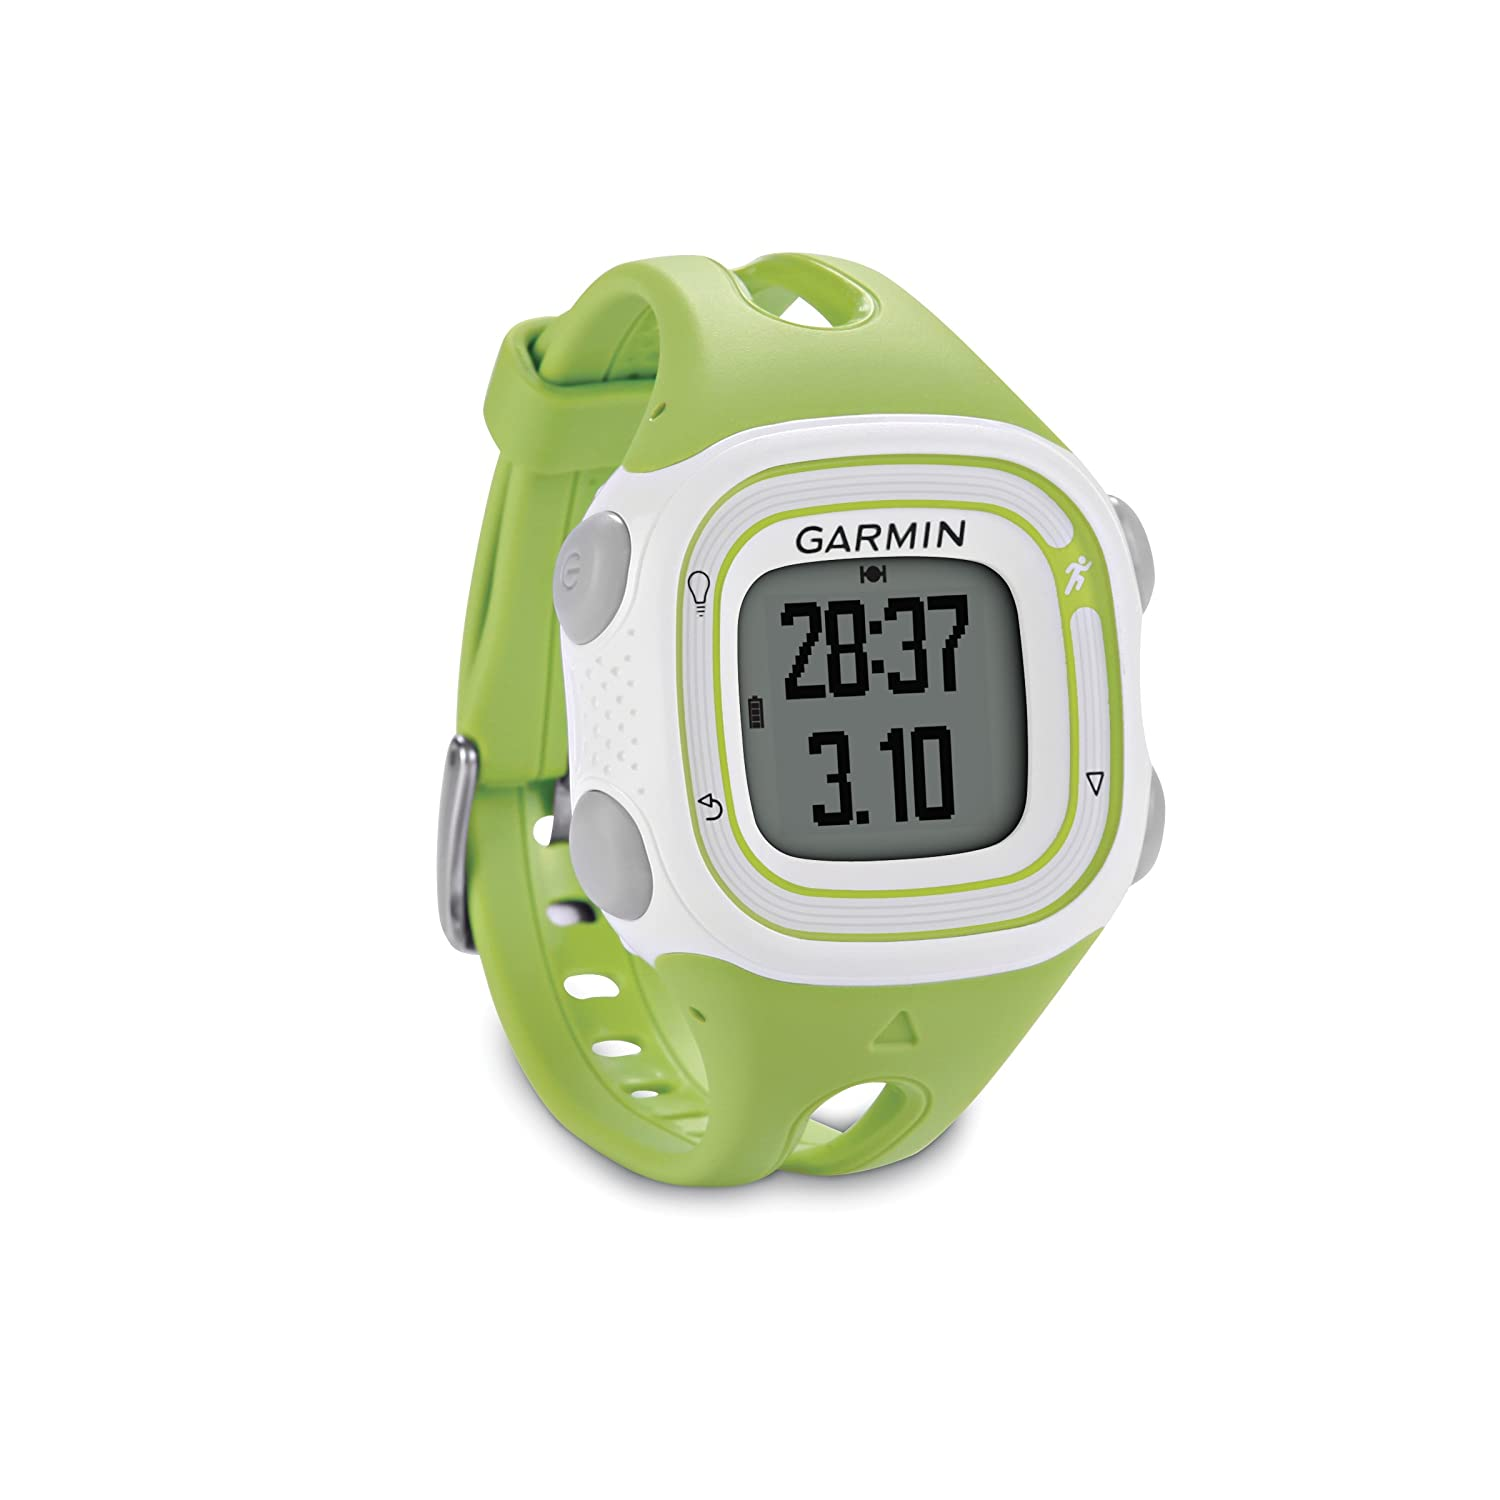 garmin forerunner 10 gps watch price in pakistan garmin nuvi in pakistan at symbios pk. Black Bedroom Furniture Sets. Home Design Ideas